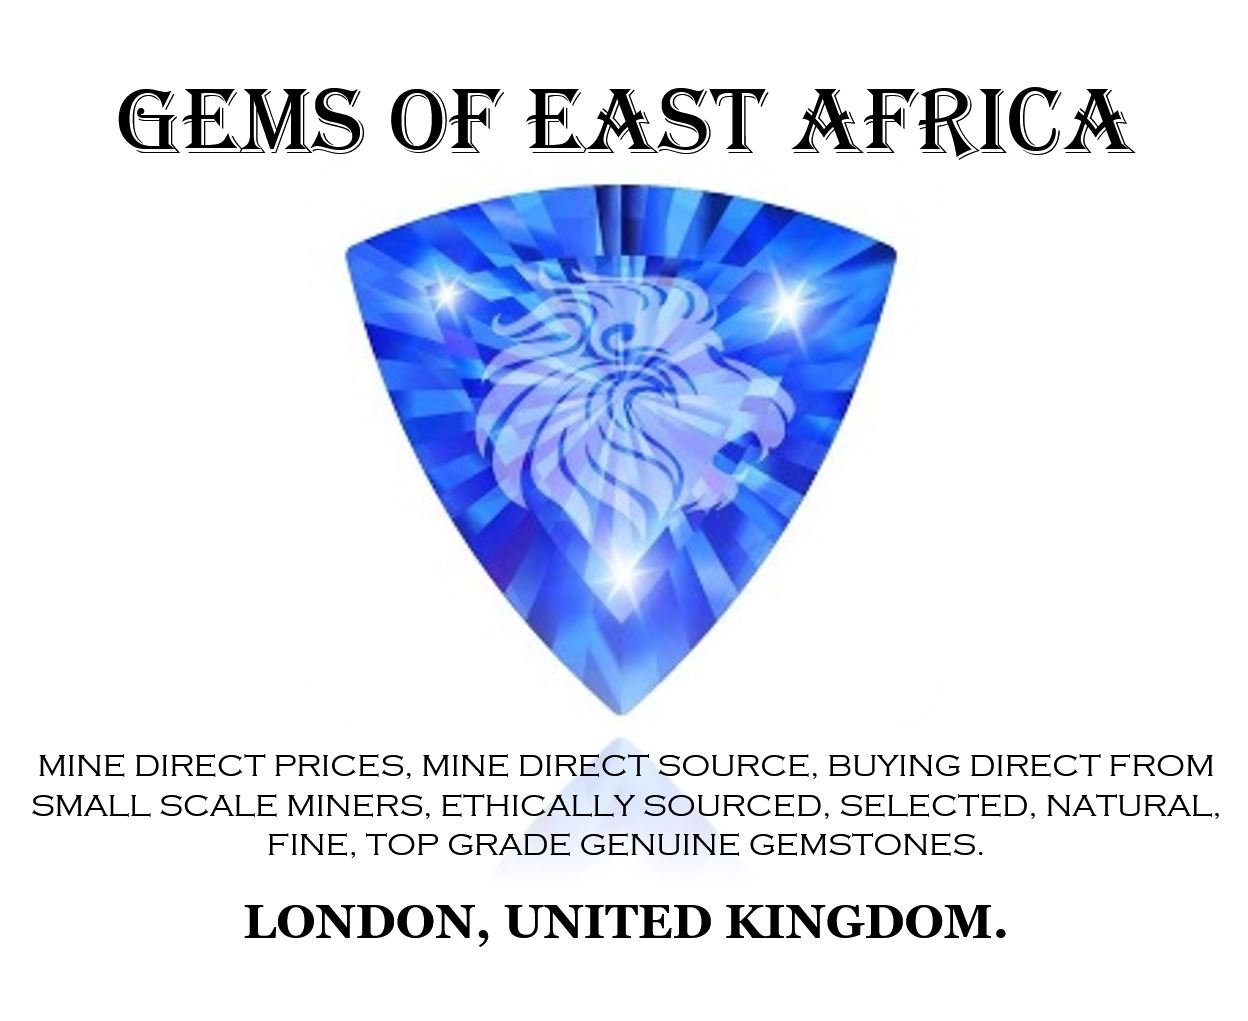 Gems Of East Africa